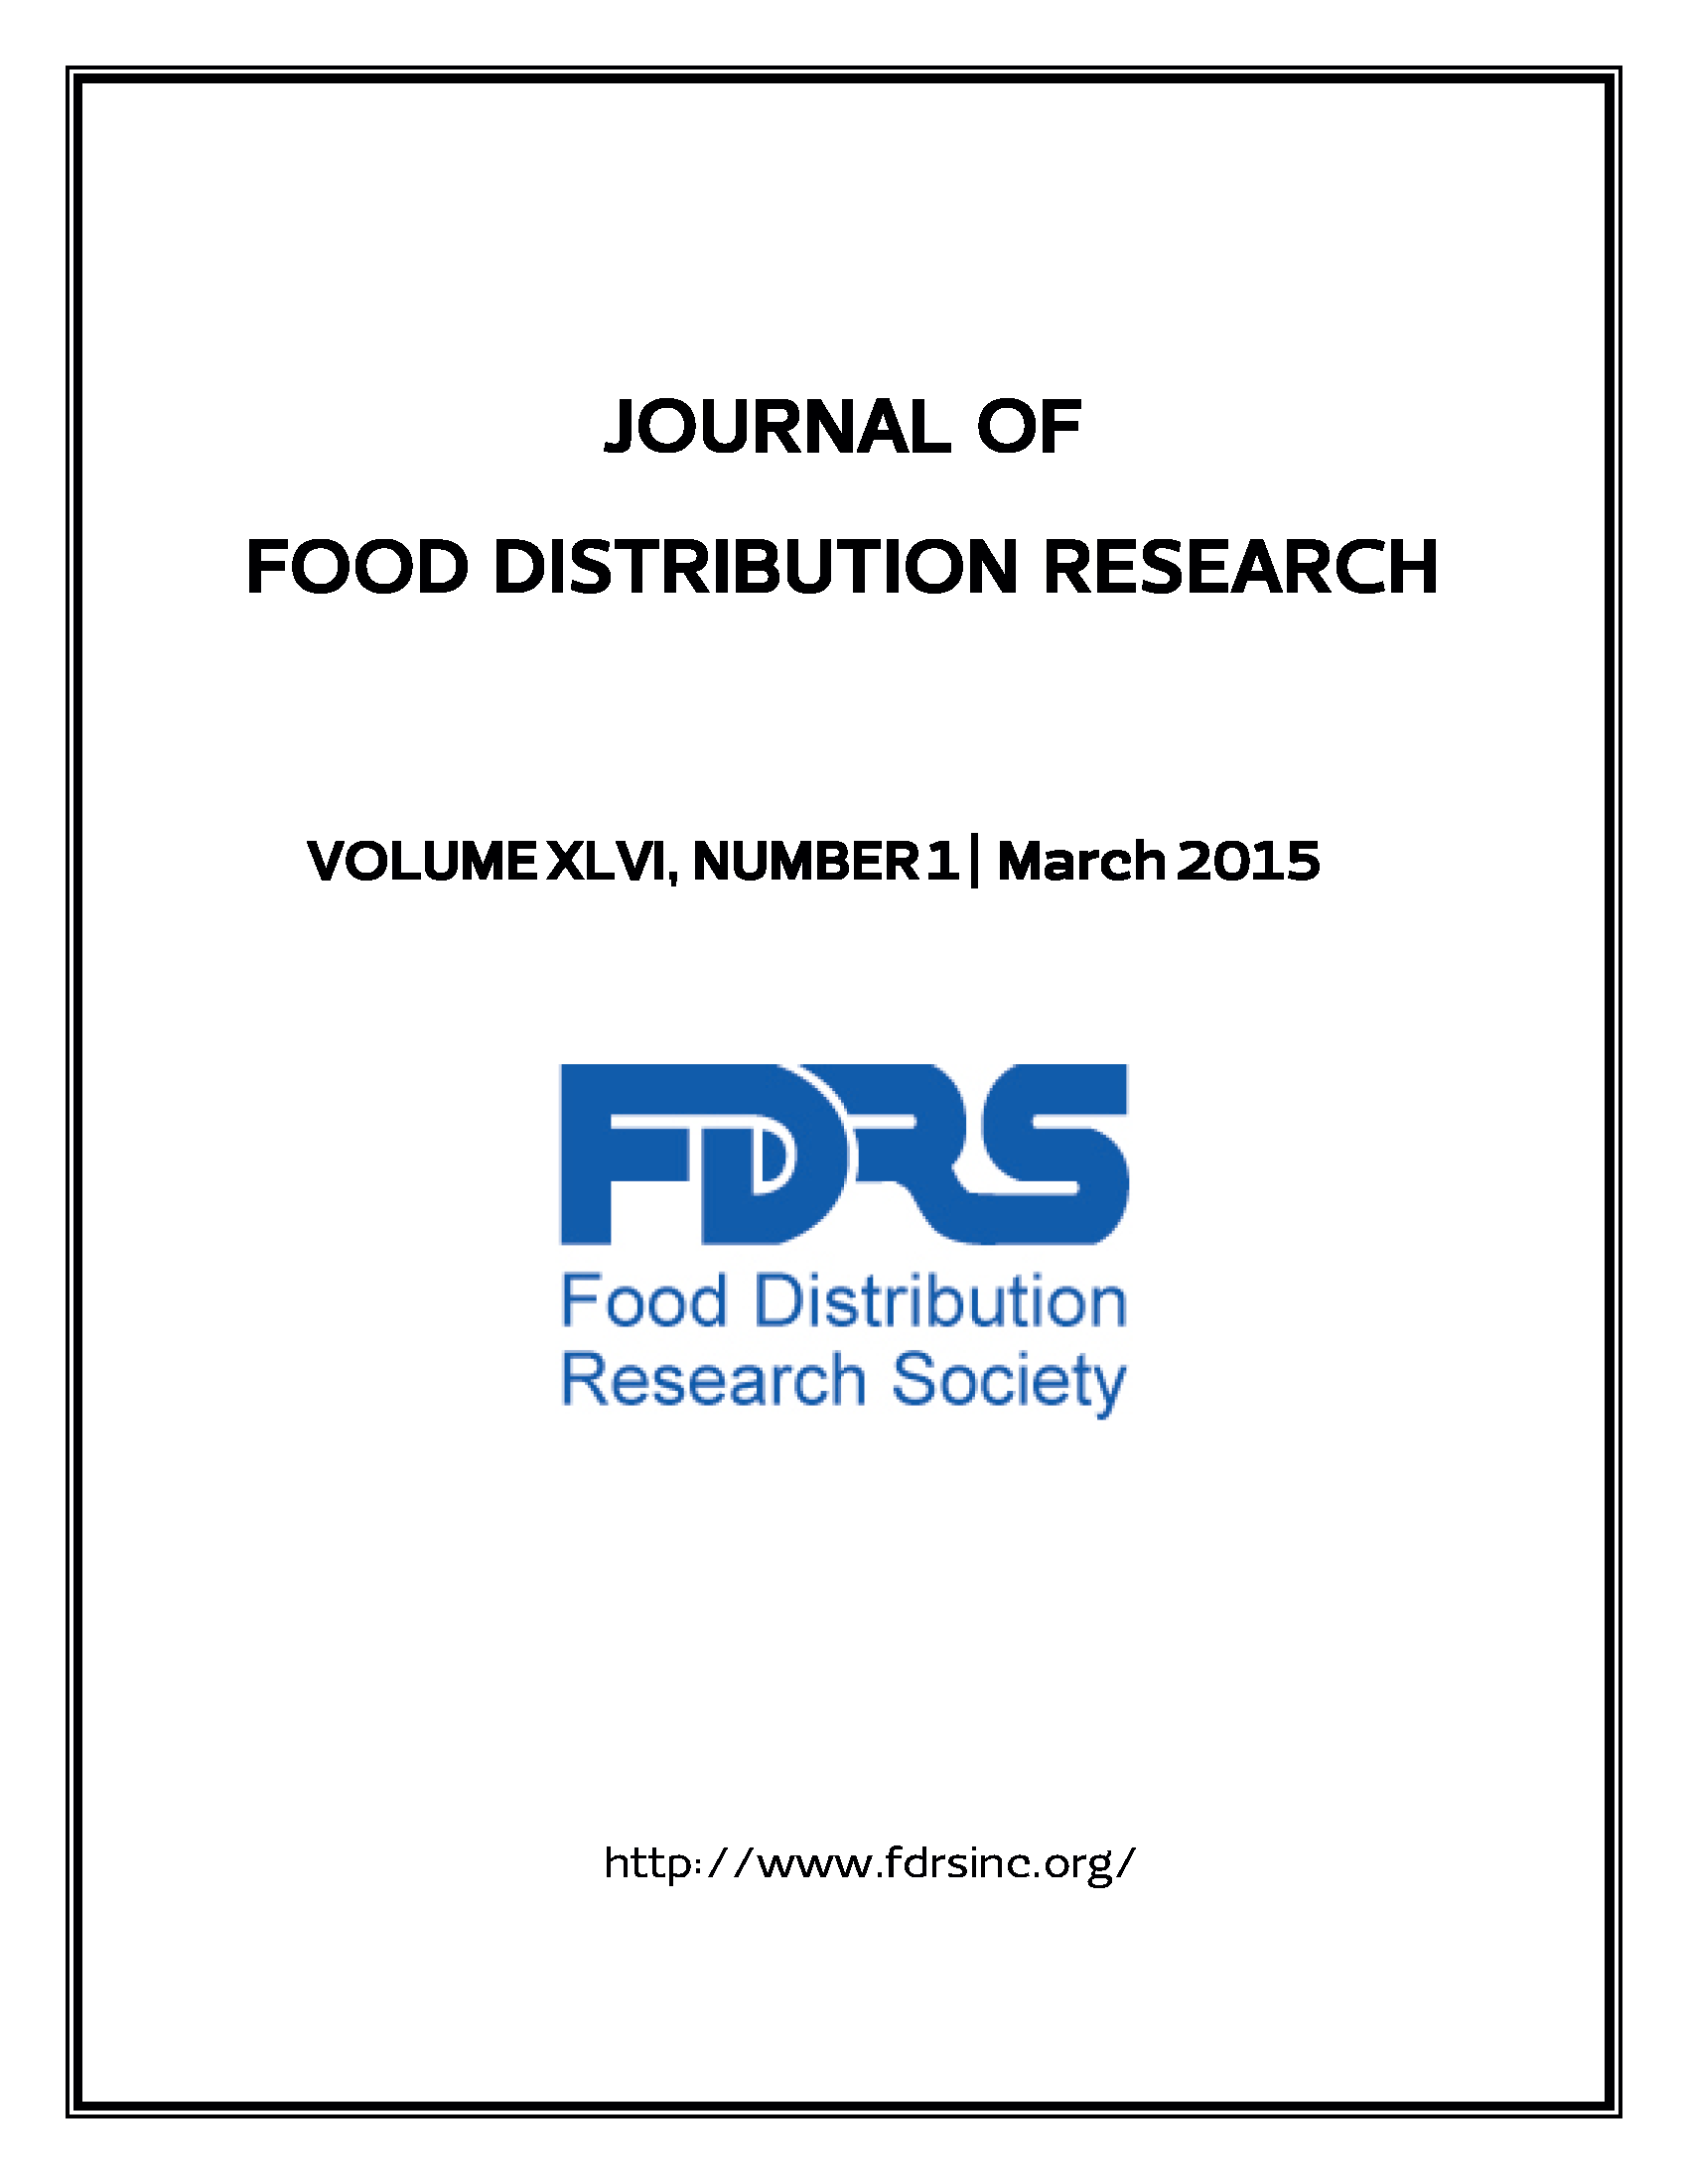 Journal of Food Distribution Research